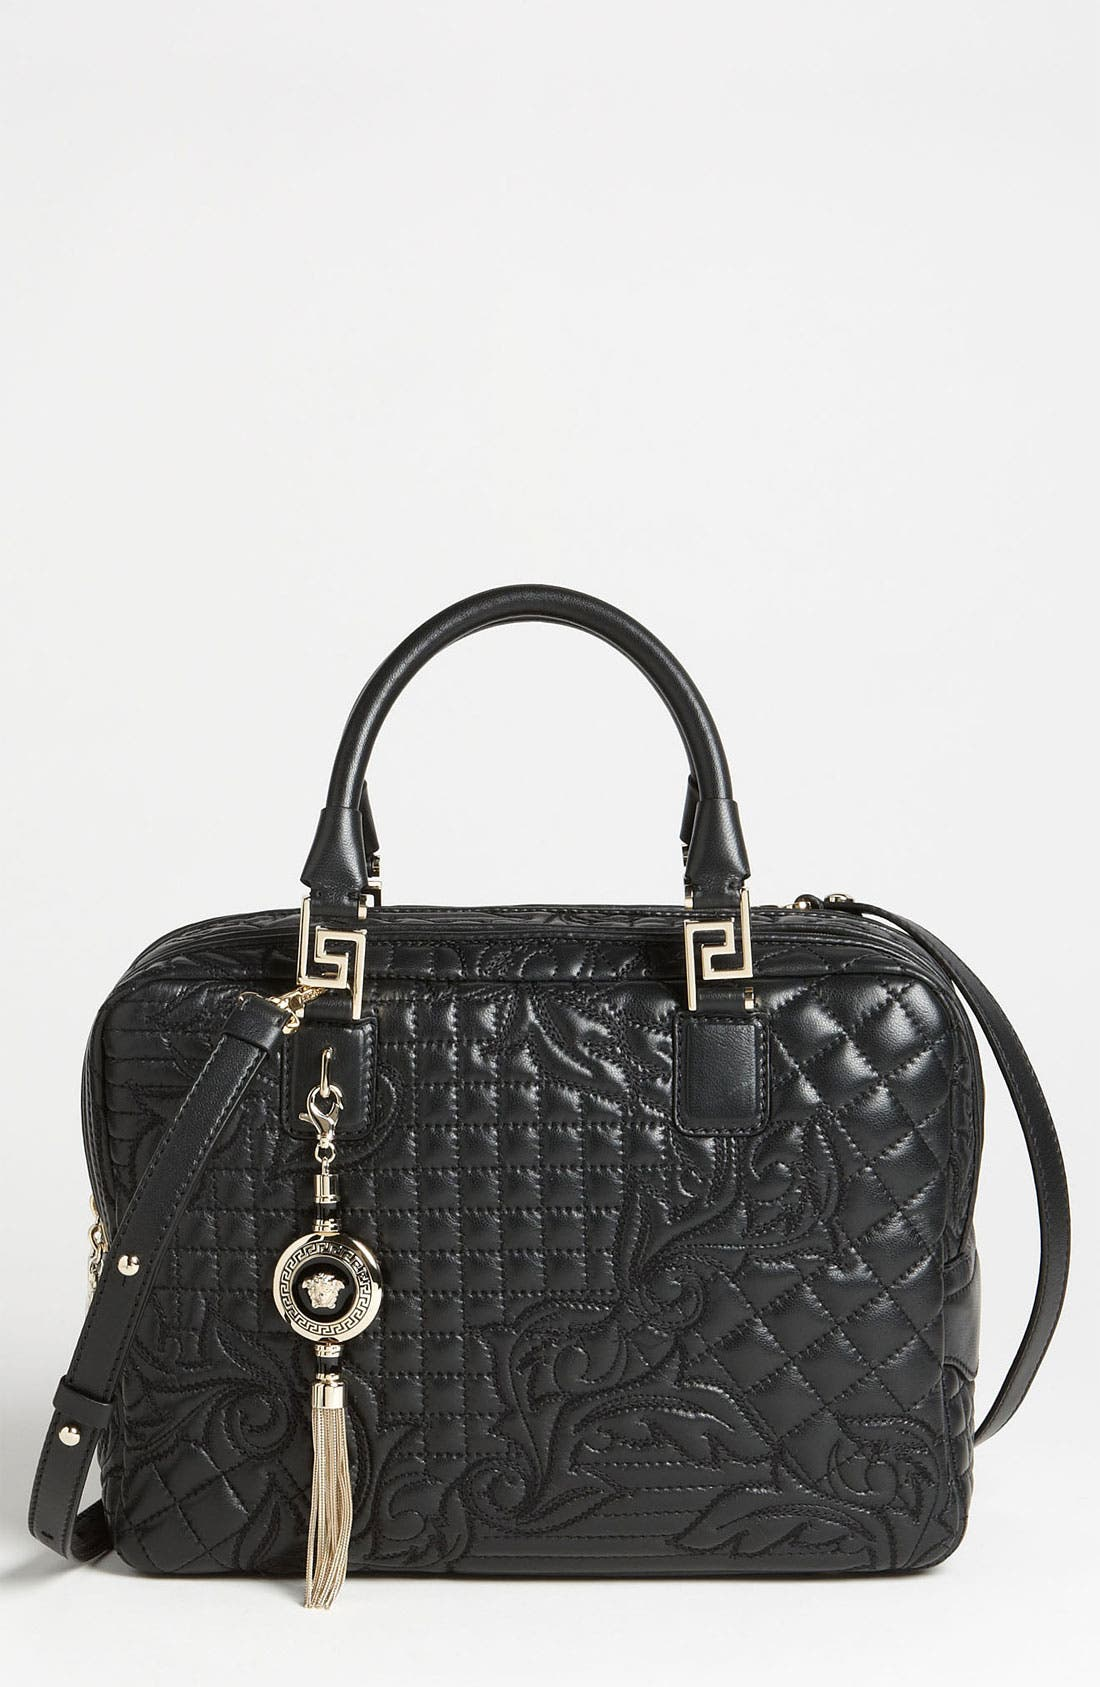 Main Image - Versace 'Linea' Leather Satchel